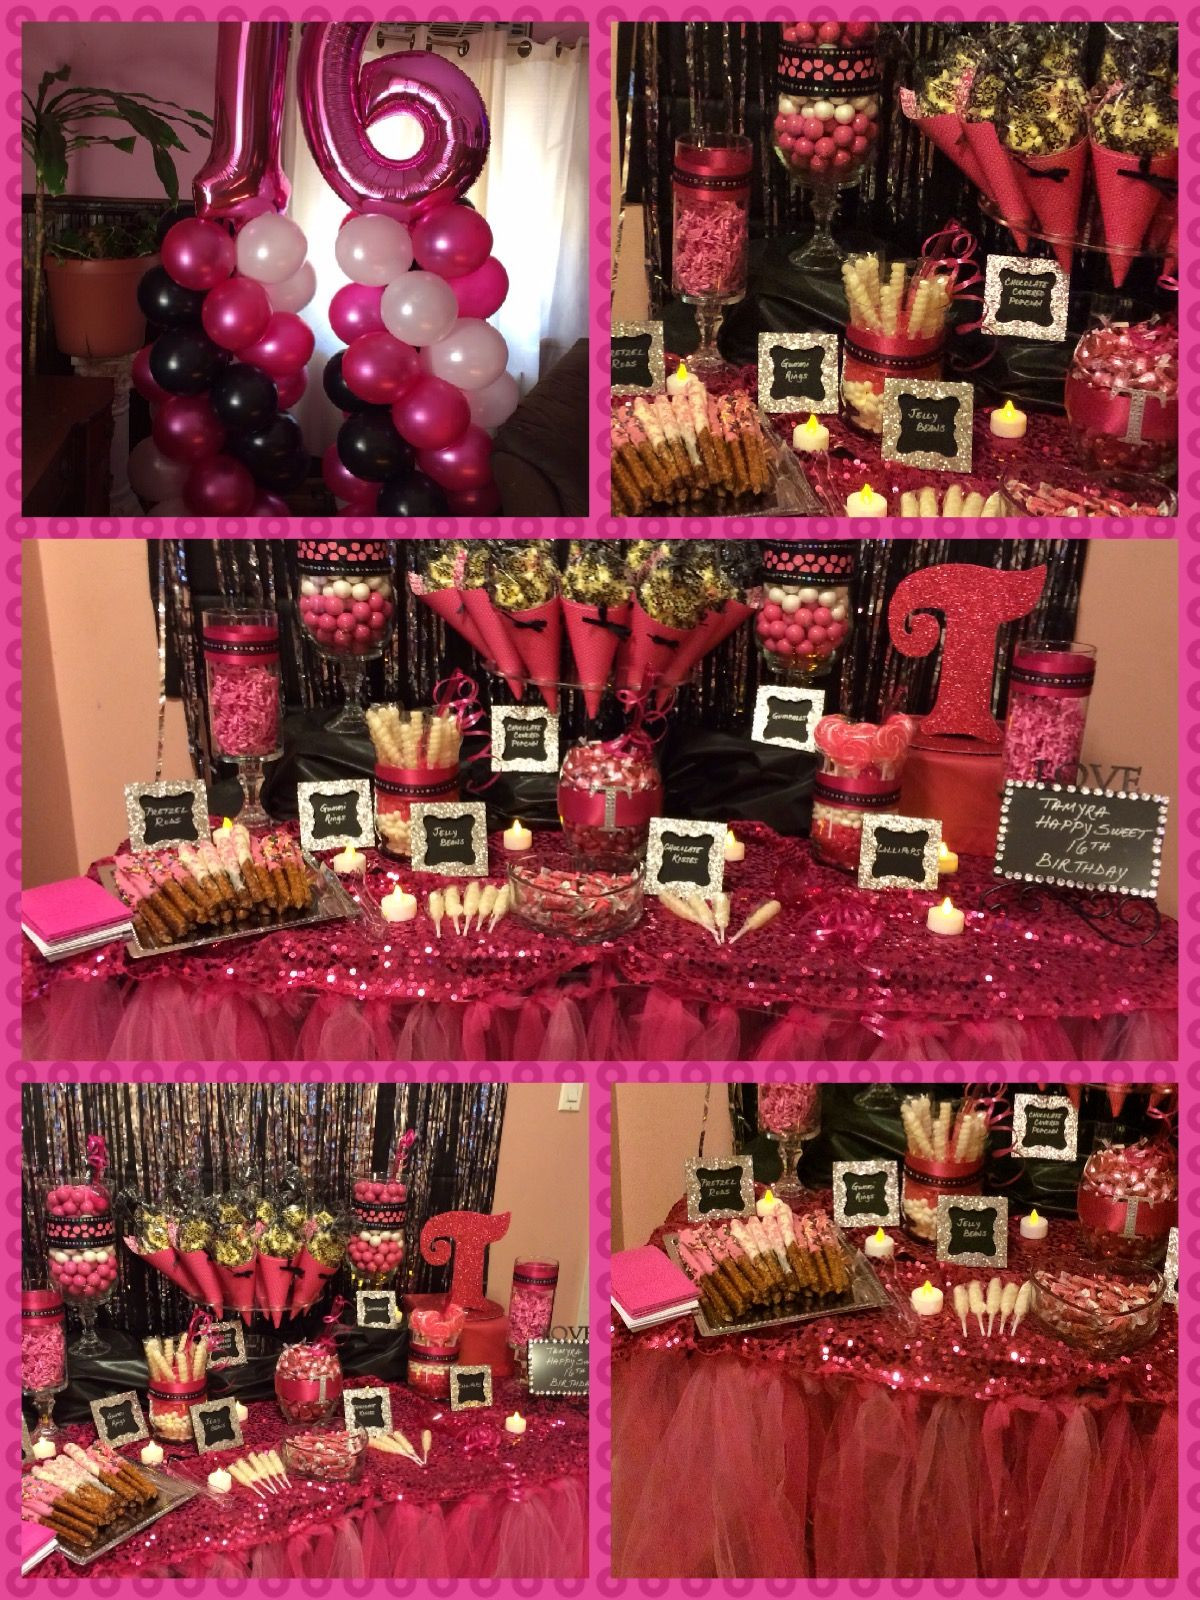 Best ideas about Sweet 16 Birthday Party . Save or Pin By Angie s Special Events and Balloons Sweet 16 party Now.